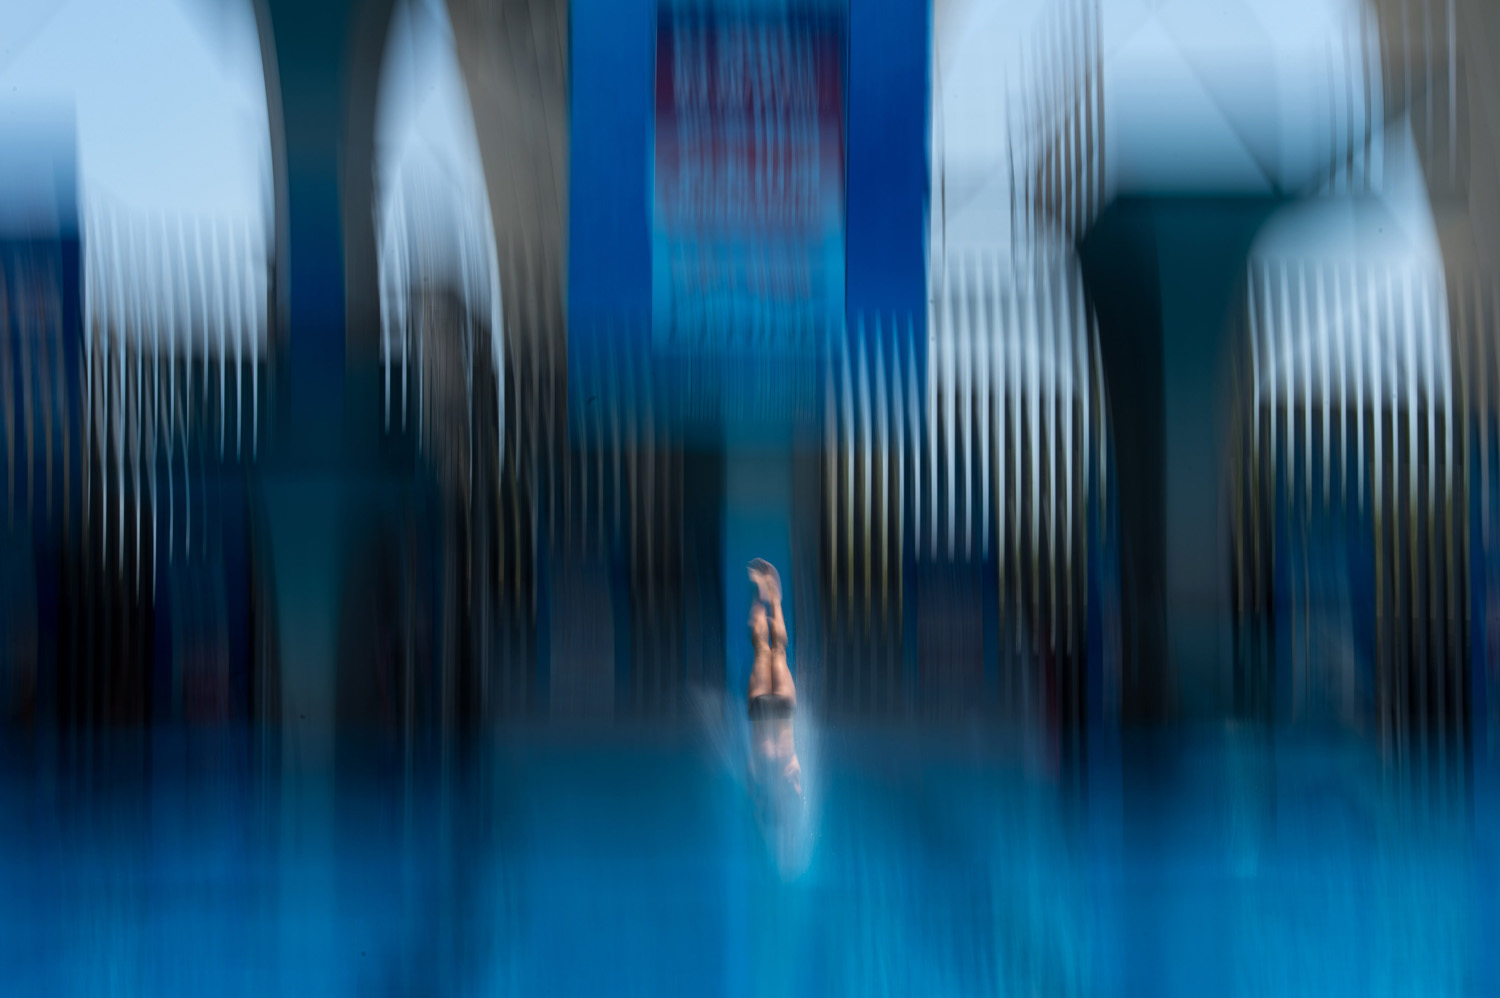 David Dinsmore of the U.S. competes during the men's 10 metre semi-final platform event at the 19th FINA Diving World Cup in Shanghai on July 20, 2014.